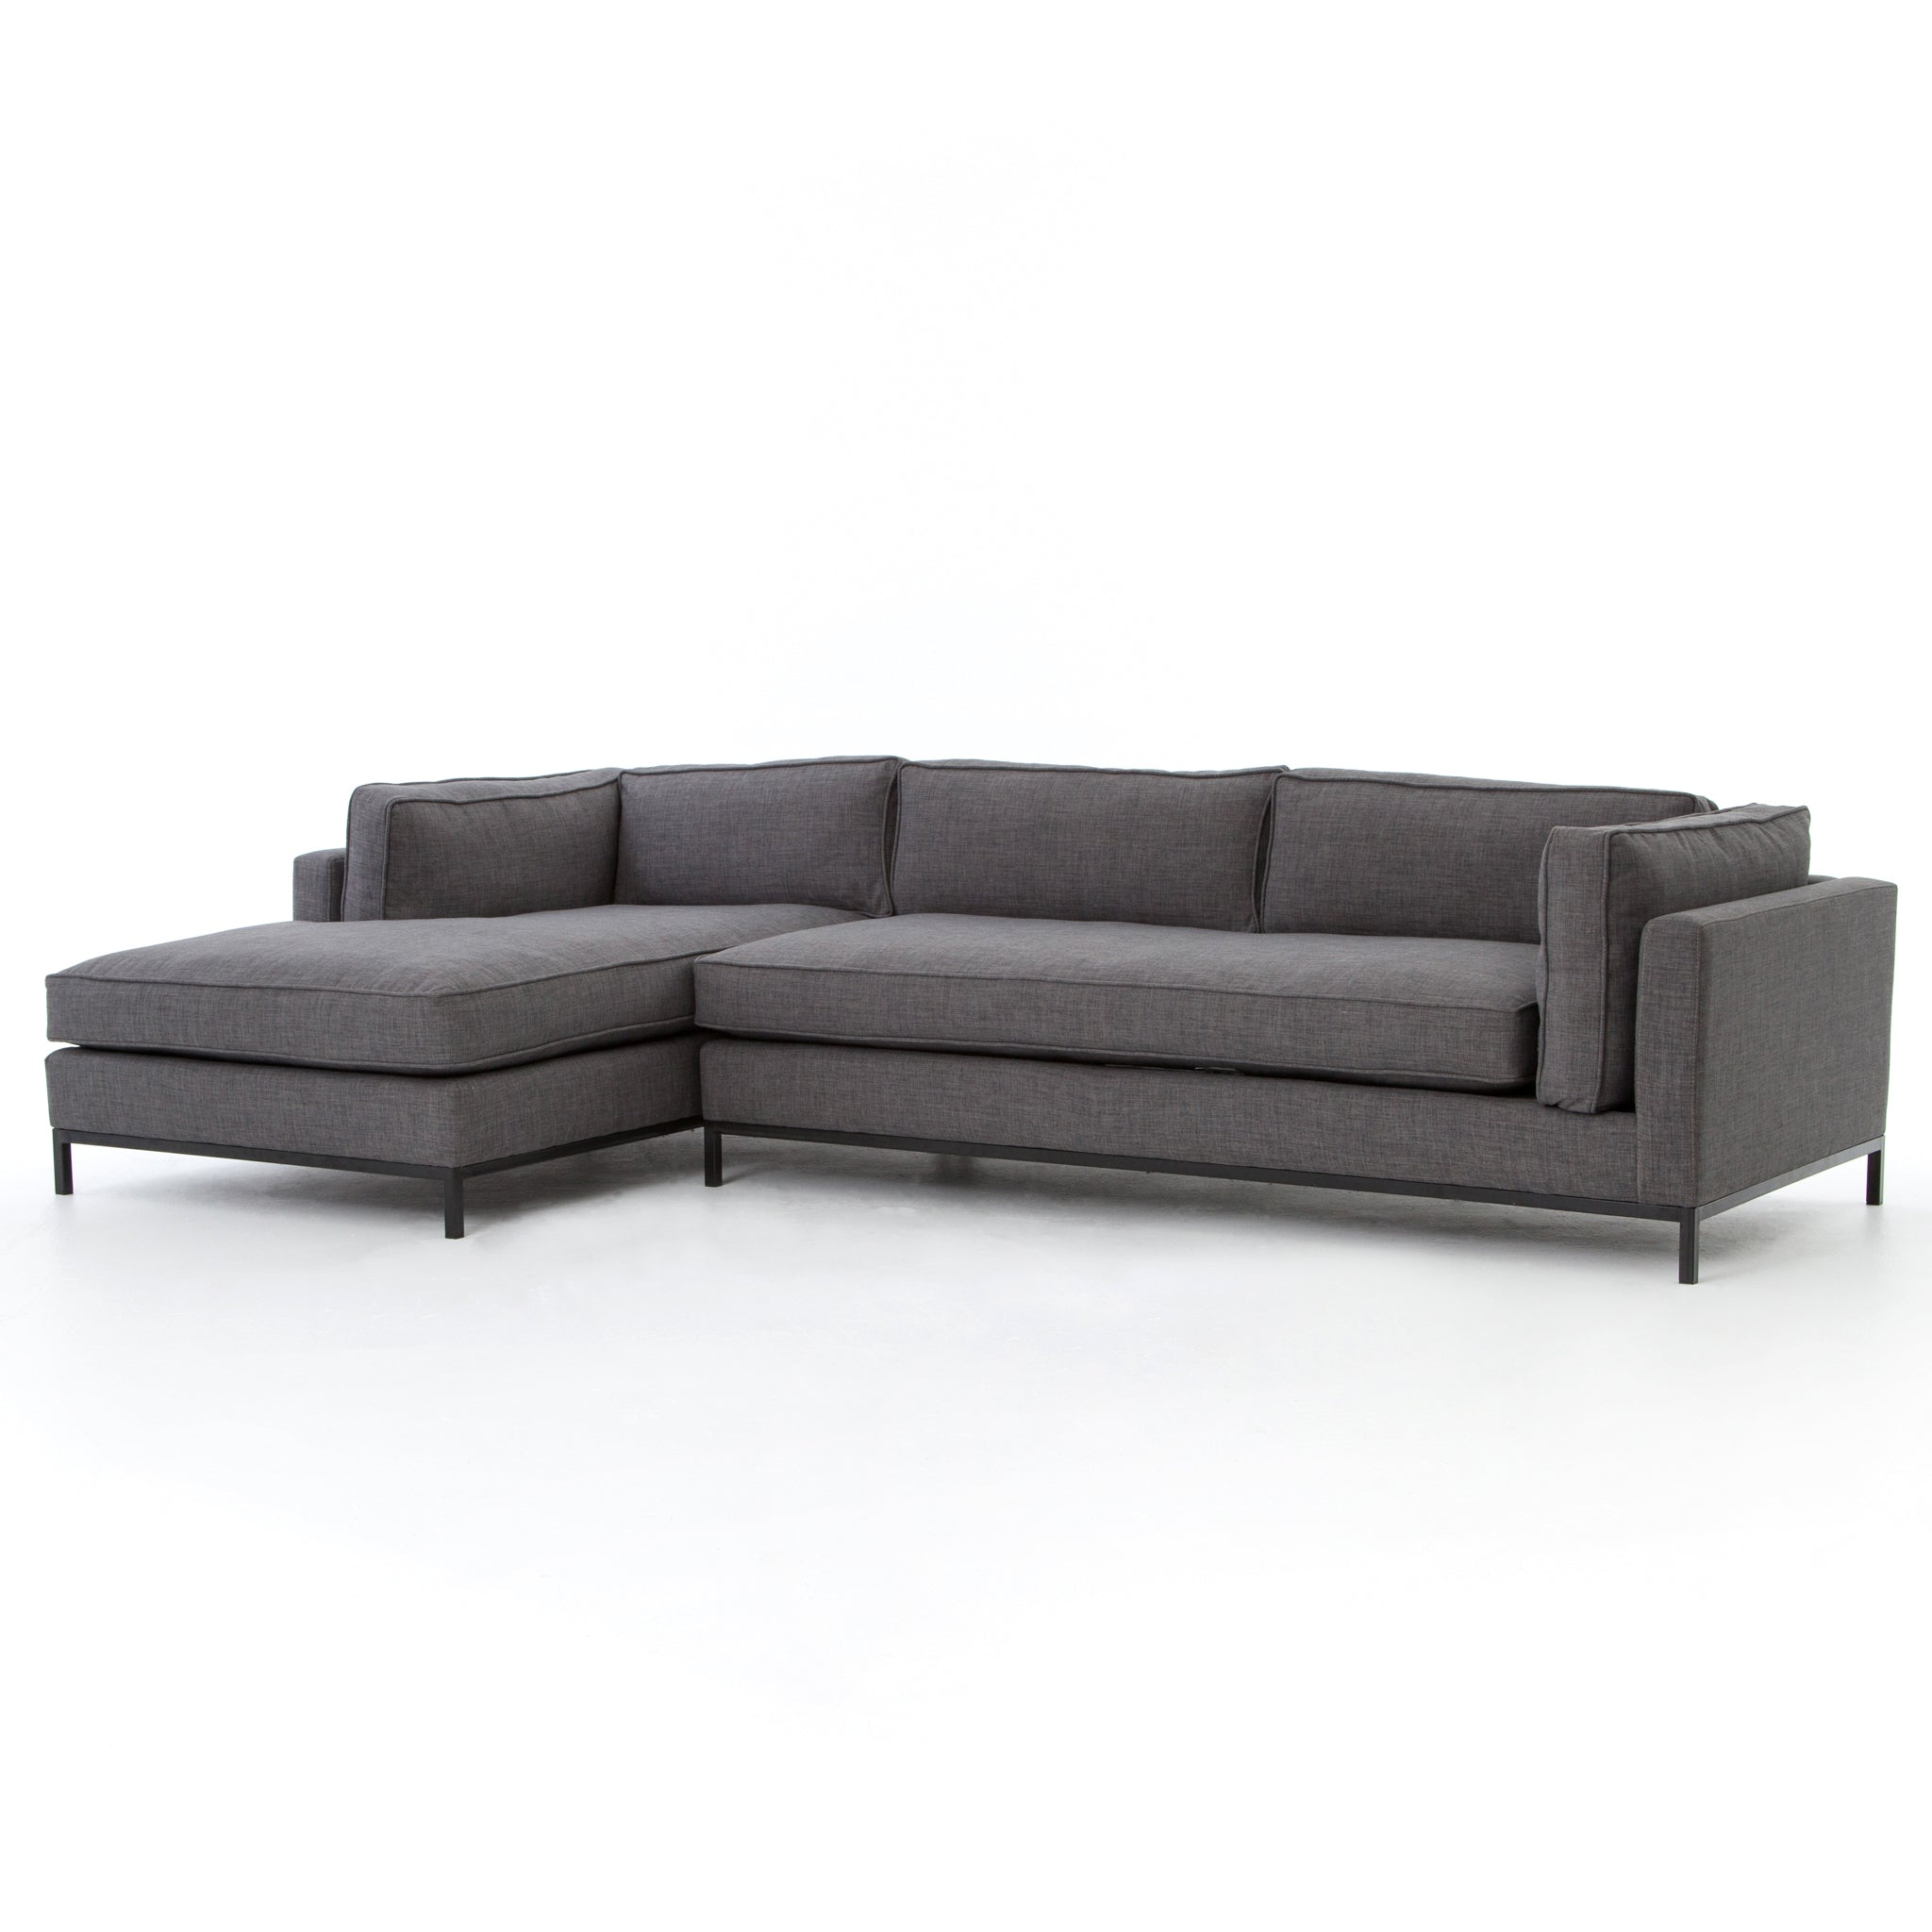 benicio-2-pc-sectional-left-arm-chaise-bennett-moon